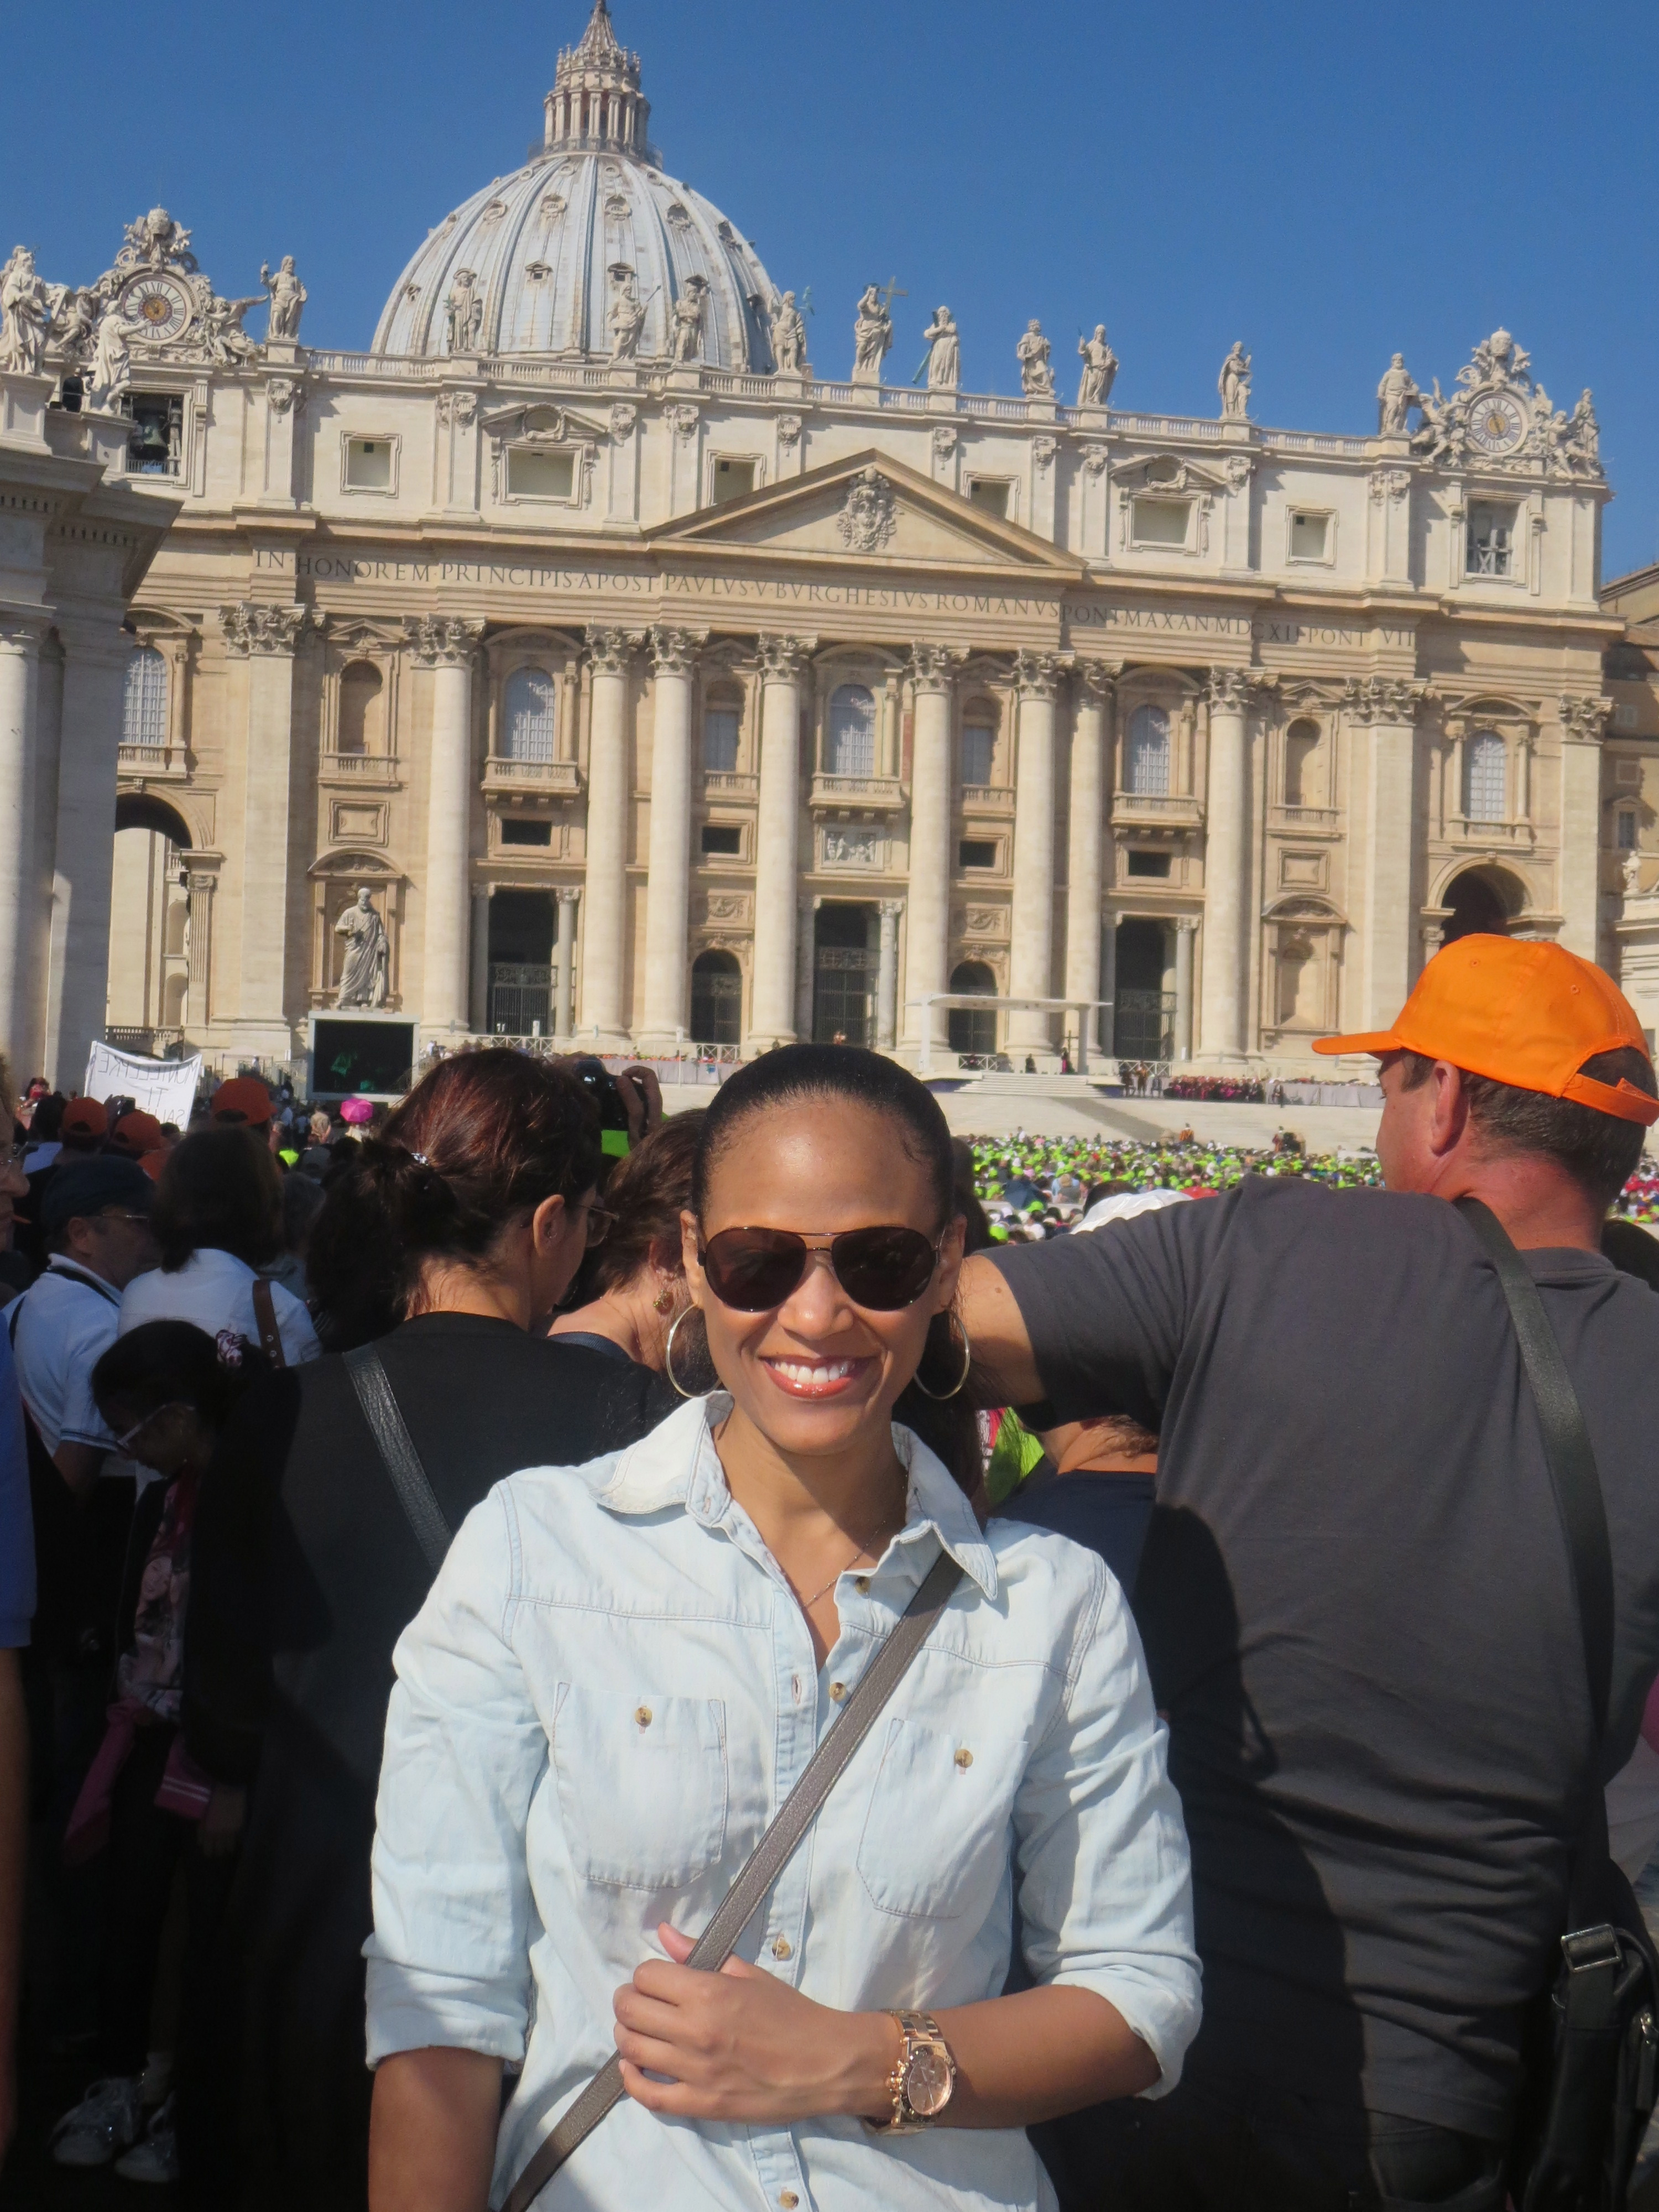 In front of St. Peter's Basilica during the Pope's Papal Audience